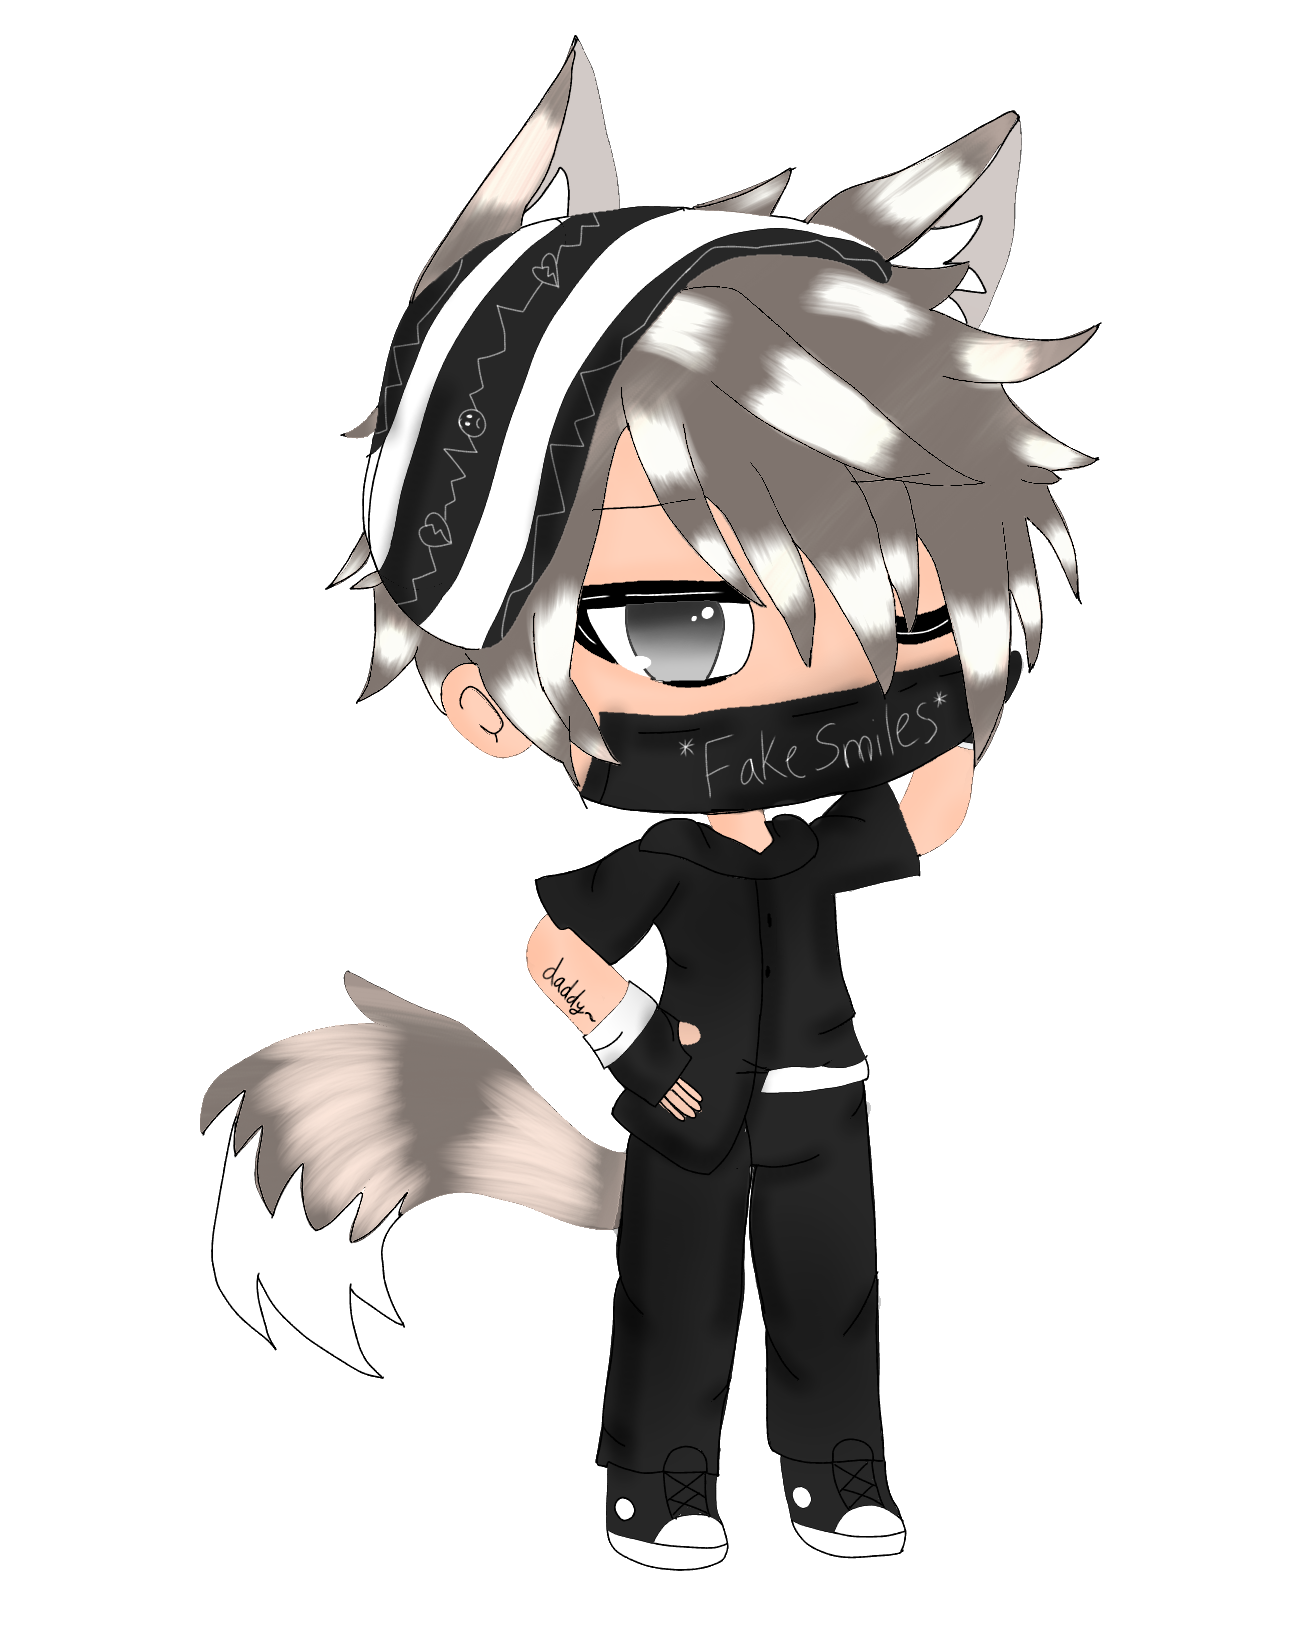 Gacha Boy Uglyboi Ew Edit Cri Oc Freetoedit Remixit Anime Wolf Girl Cute Anime Character Baby Animals Funny